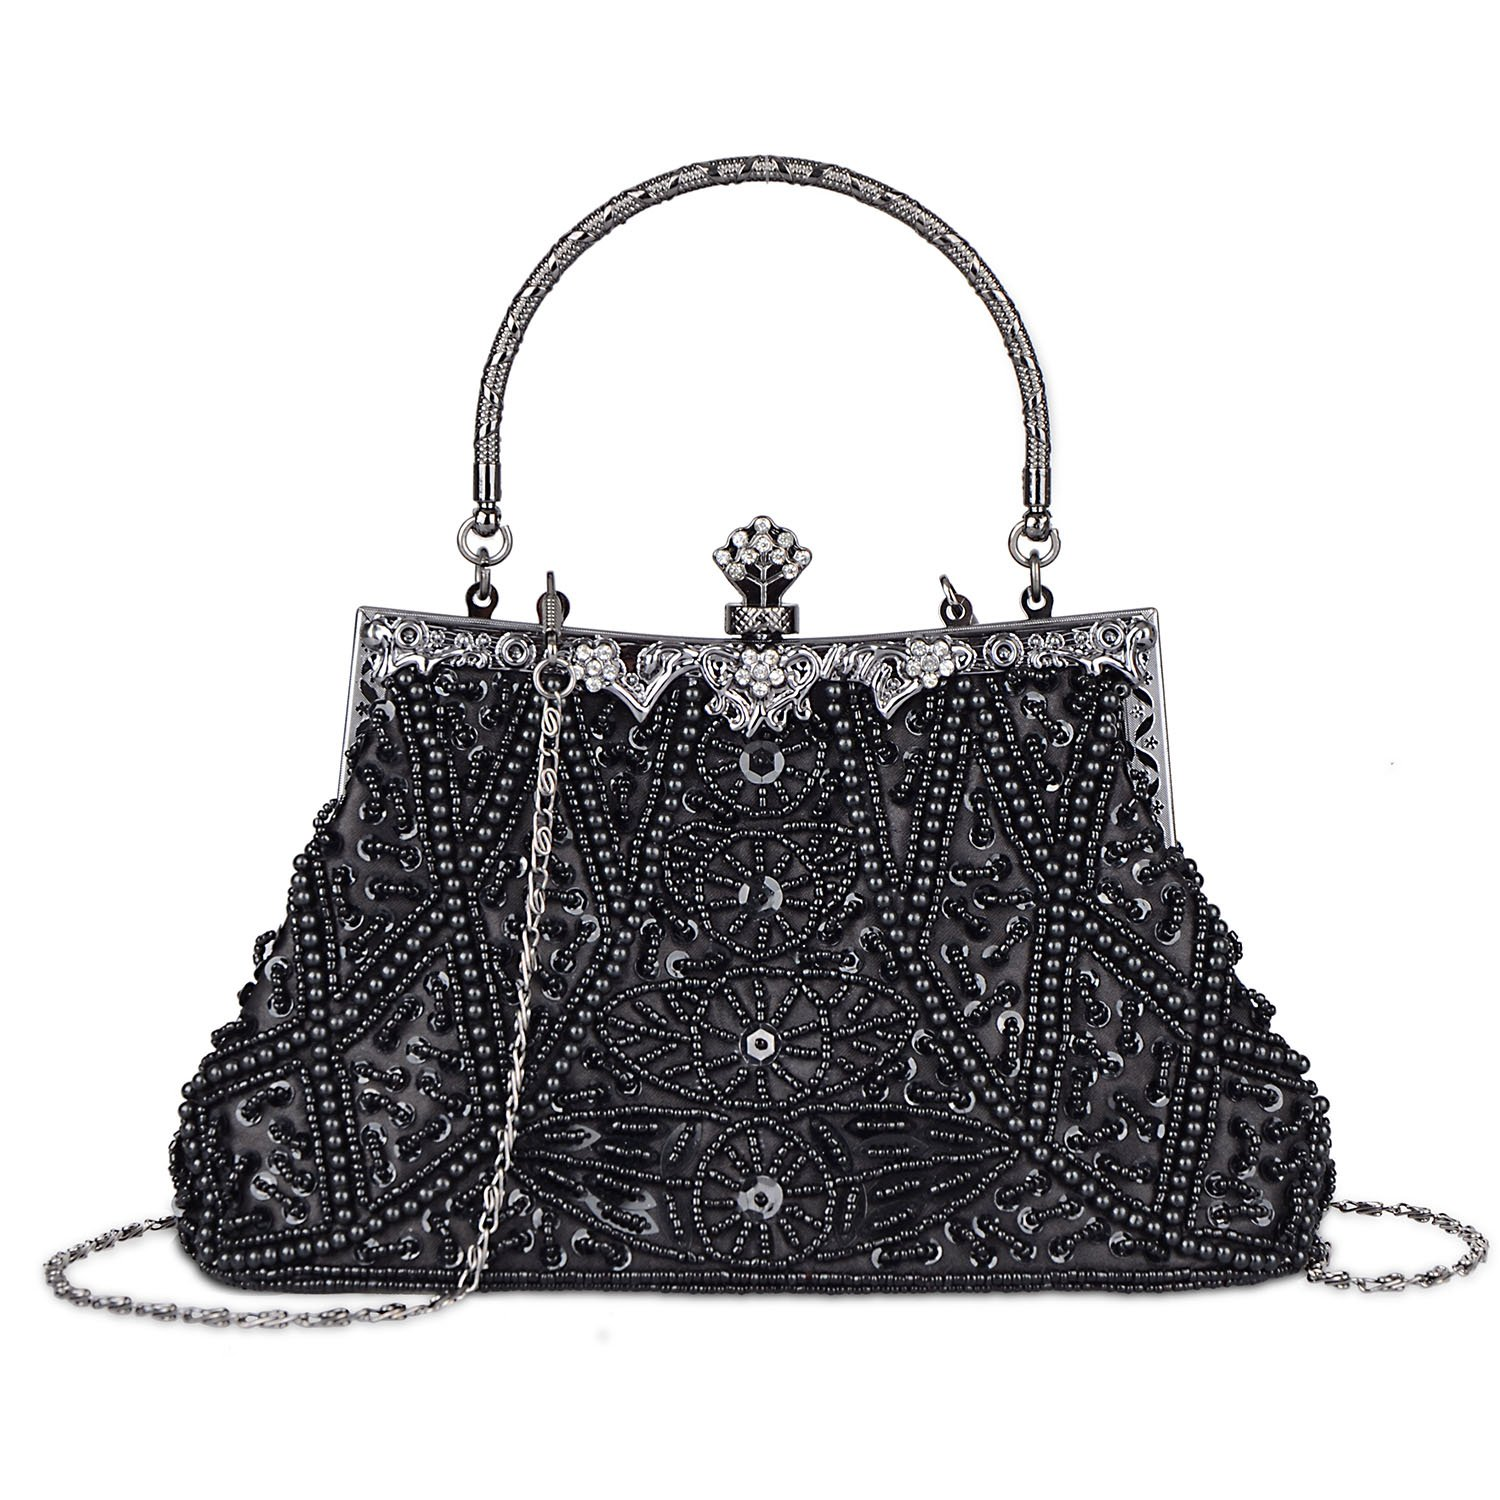 Fashion Vintage Style Handbag Beaded Sequined Evening Bag Wedding Party Handbag Rhinestone Clutch Purse (Black) by Baglamor